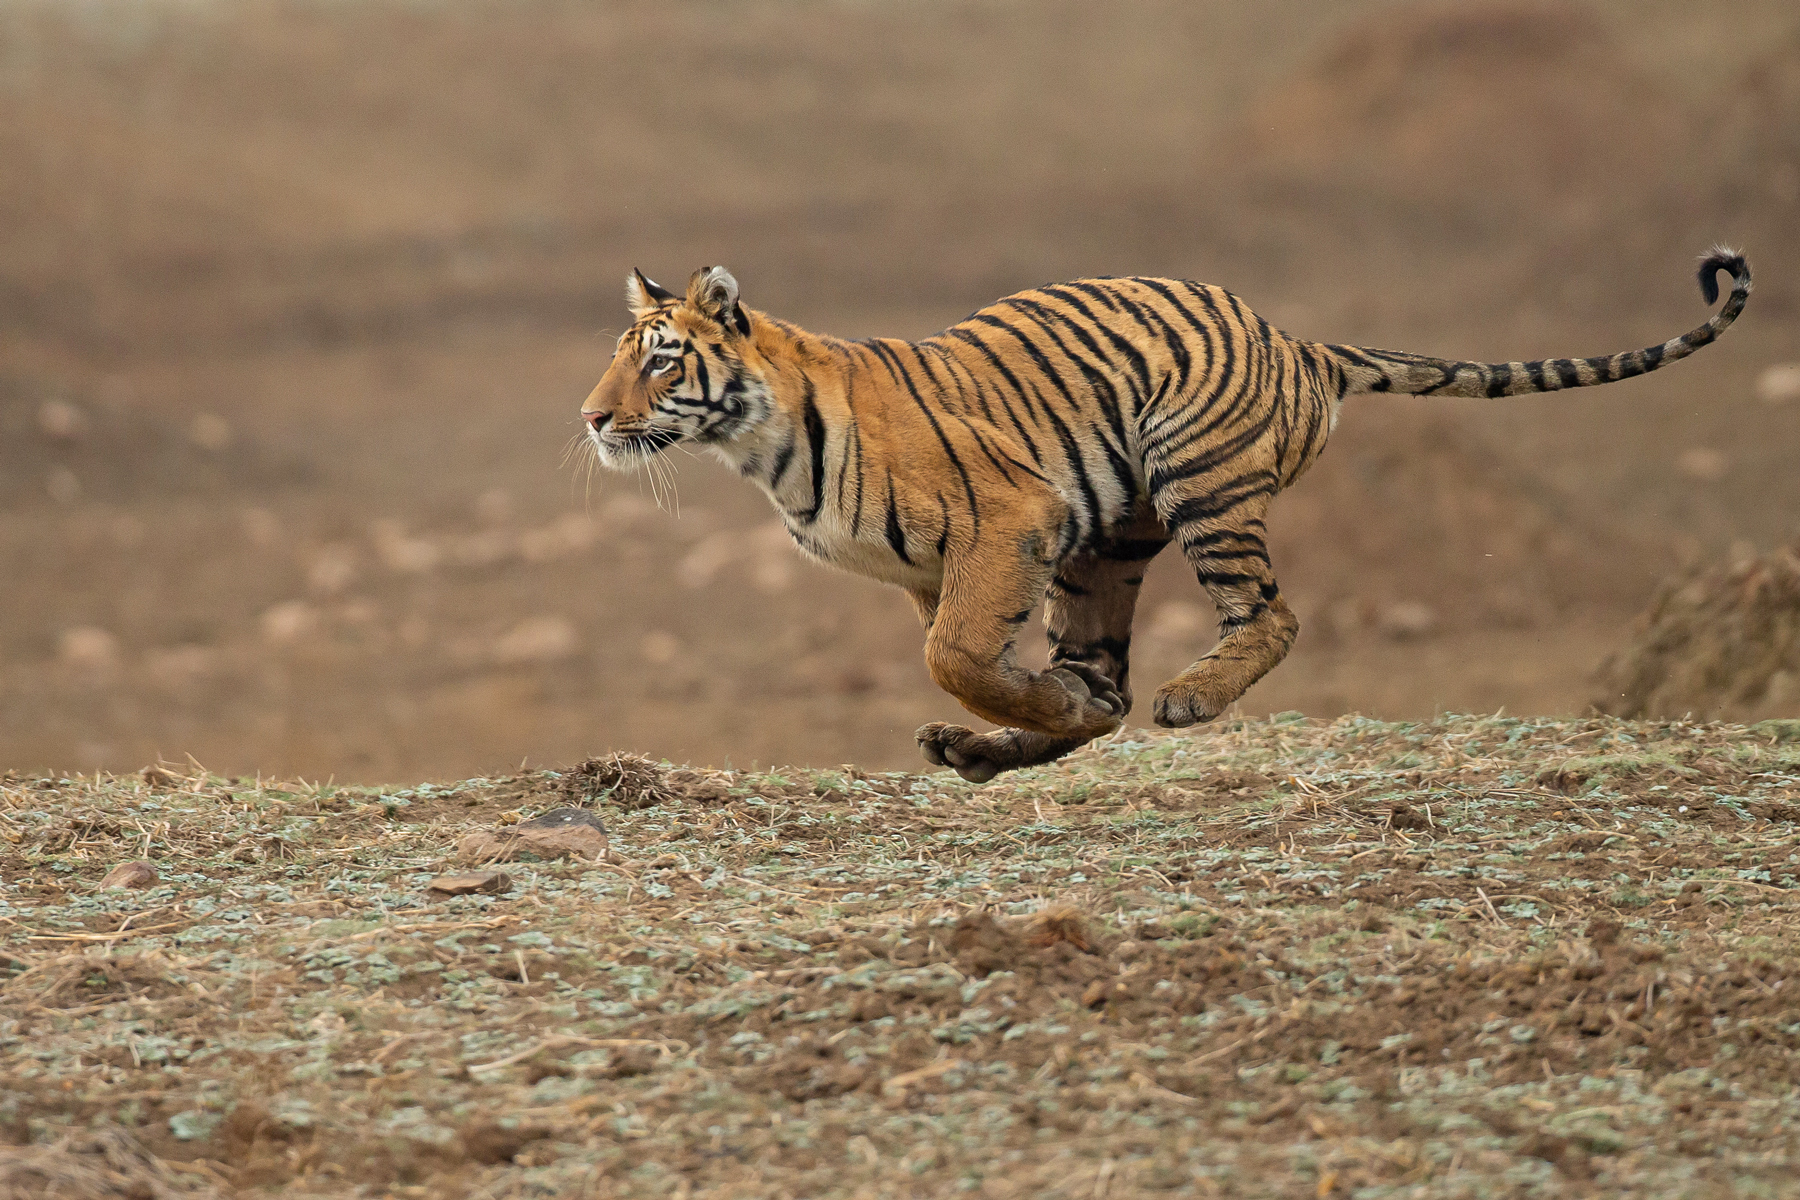 India: Tiger and Wildlife Spectacular Tour Report 2019 - Wild Images